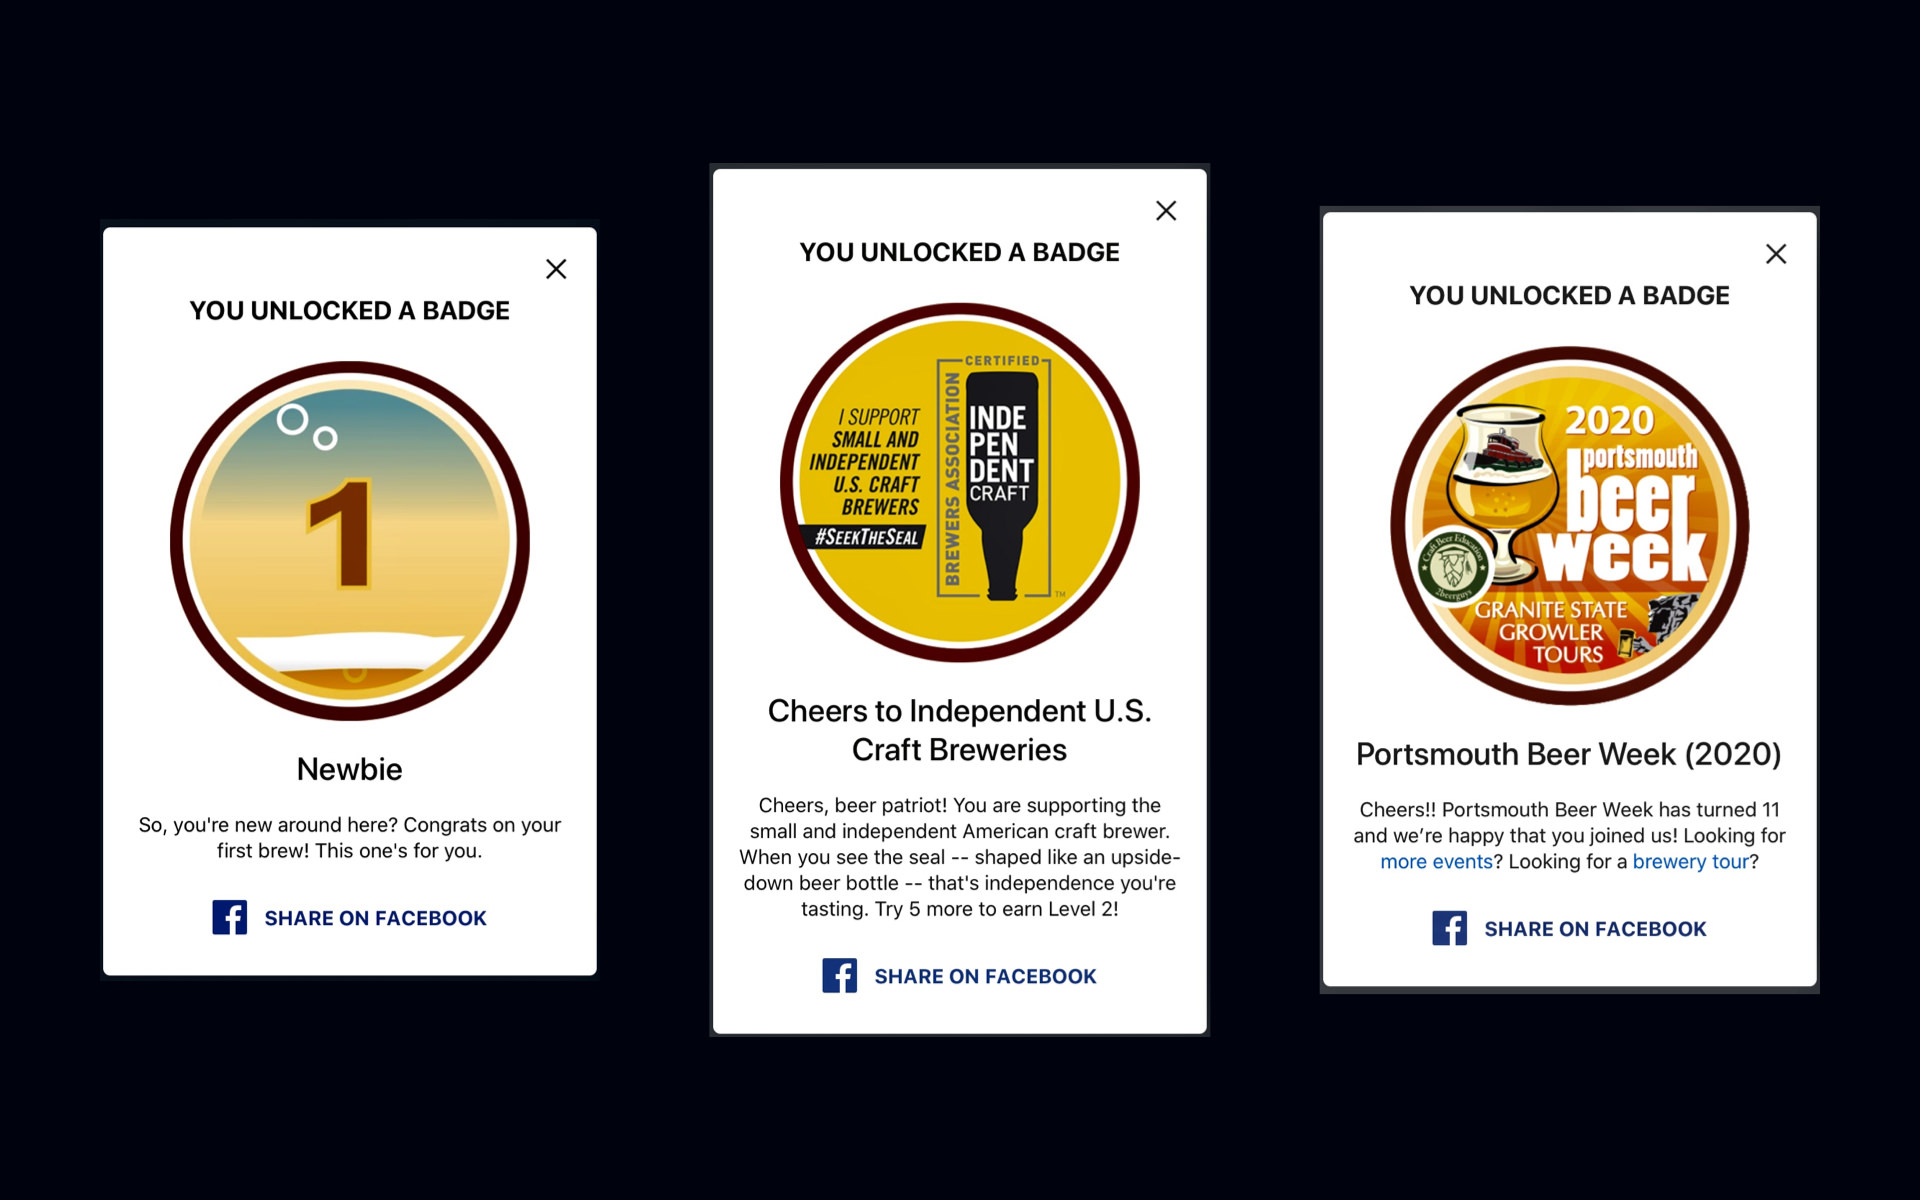 Three Untappd badges from left to right, Newbie, Cheers to Independent U.S. Craft Breweries, and Portsmouth Beer Week (2020).